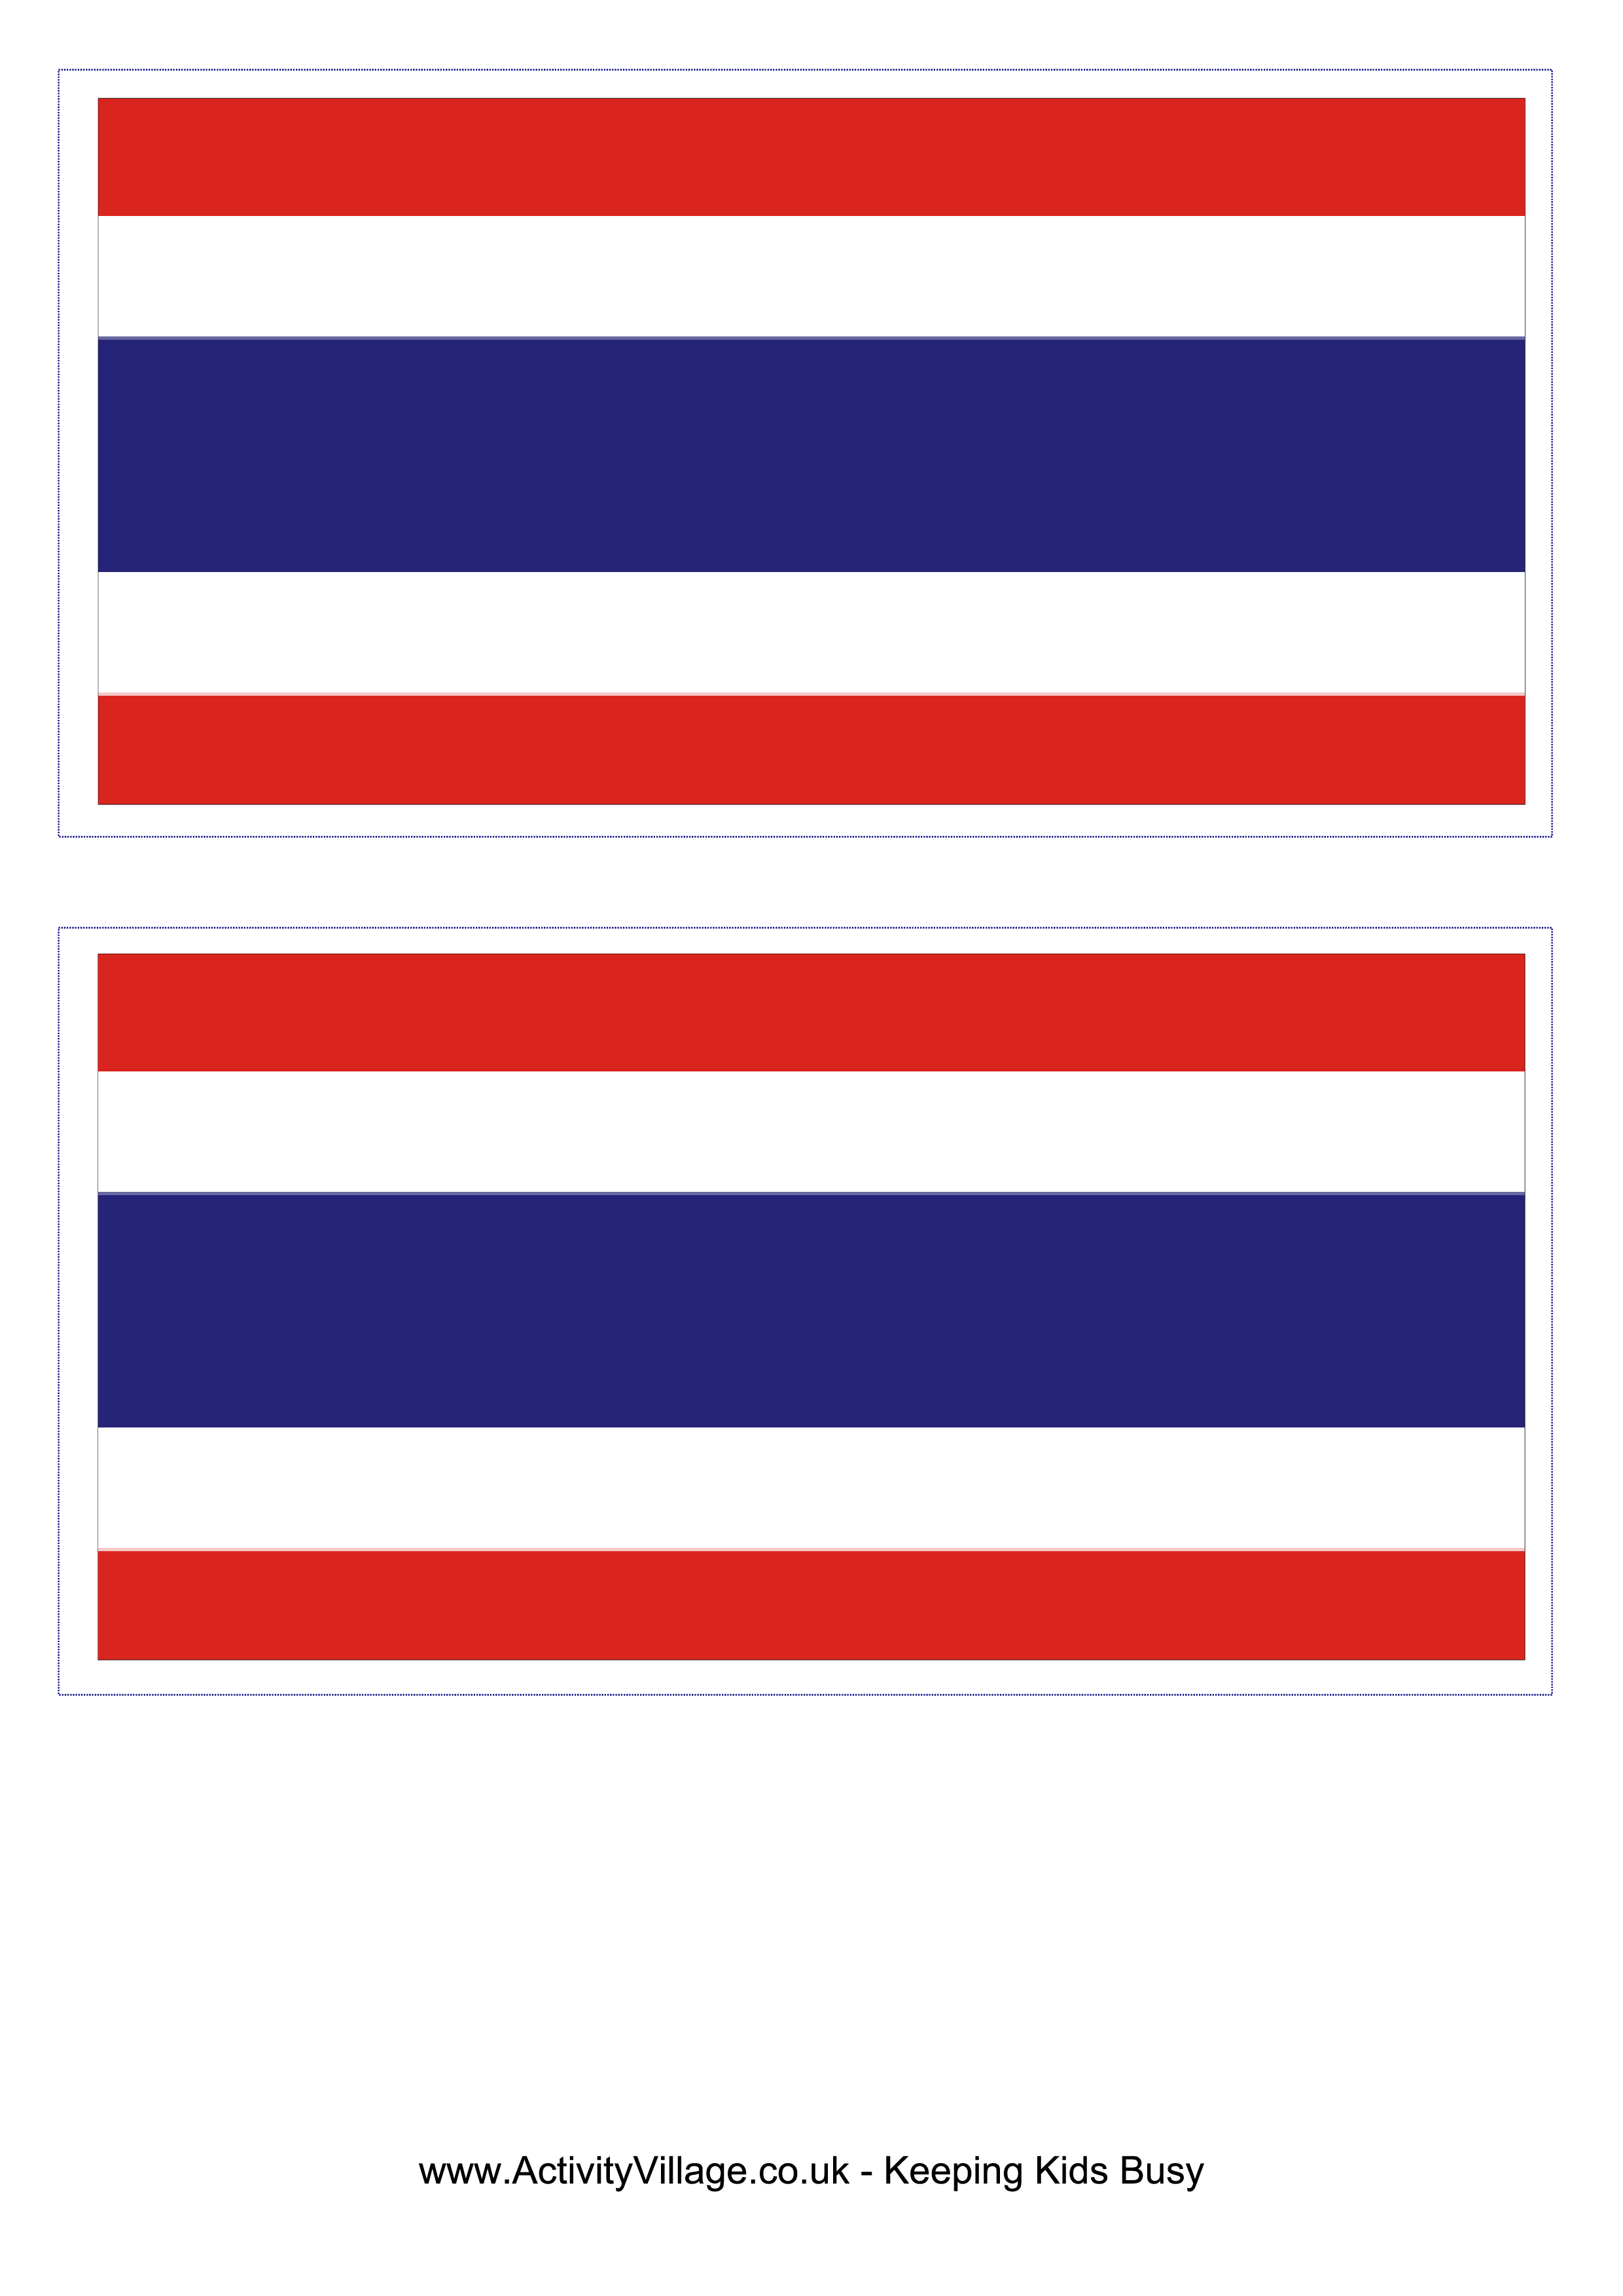 Thailand Flag Download This Free Printable Thailand Template A4 Flag A5 Flag 8 And 21 Flags On One A4page Flag Printable Flag Coloring Pages Thailand Flag